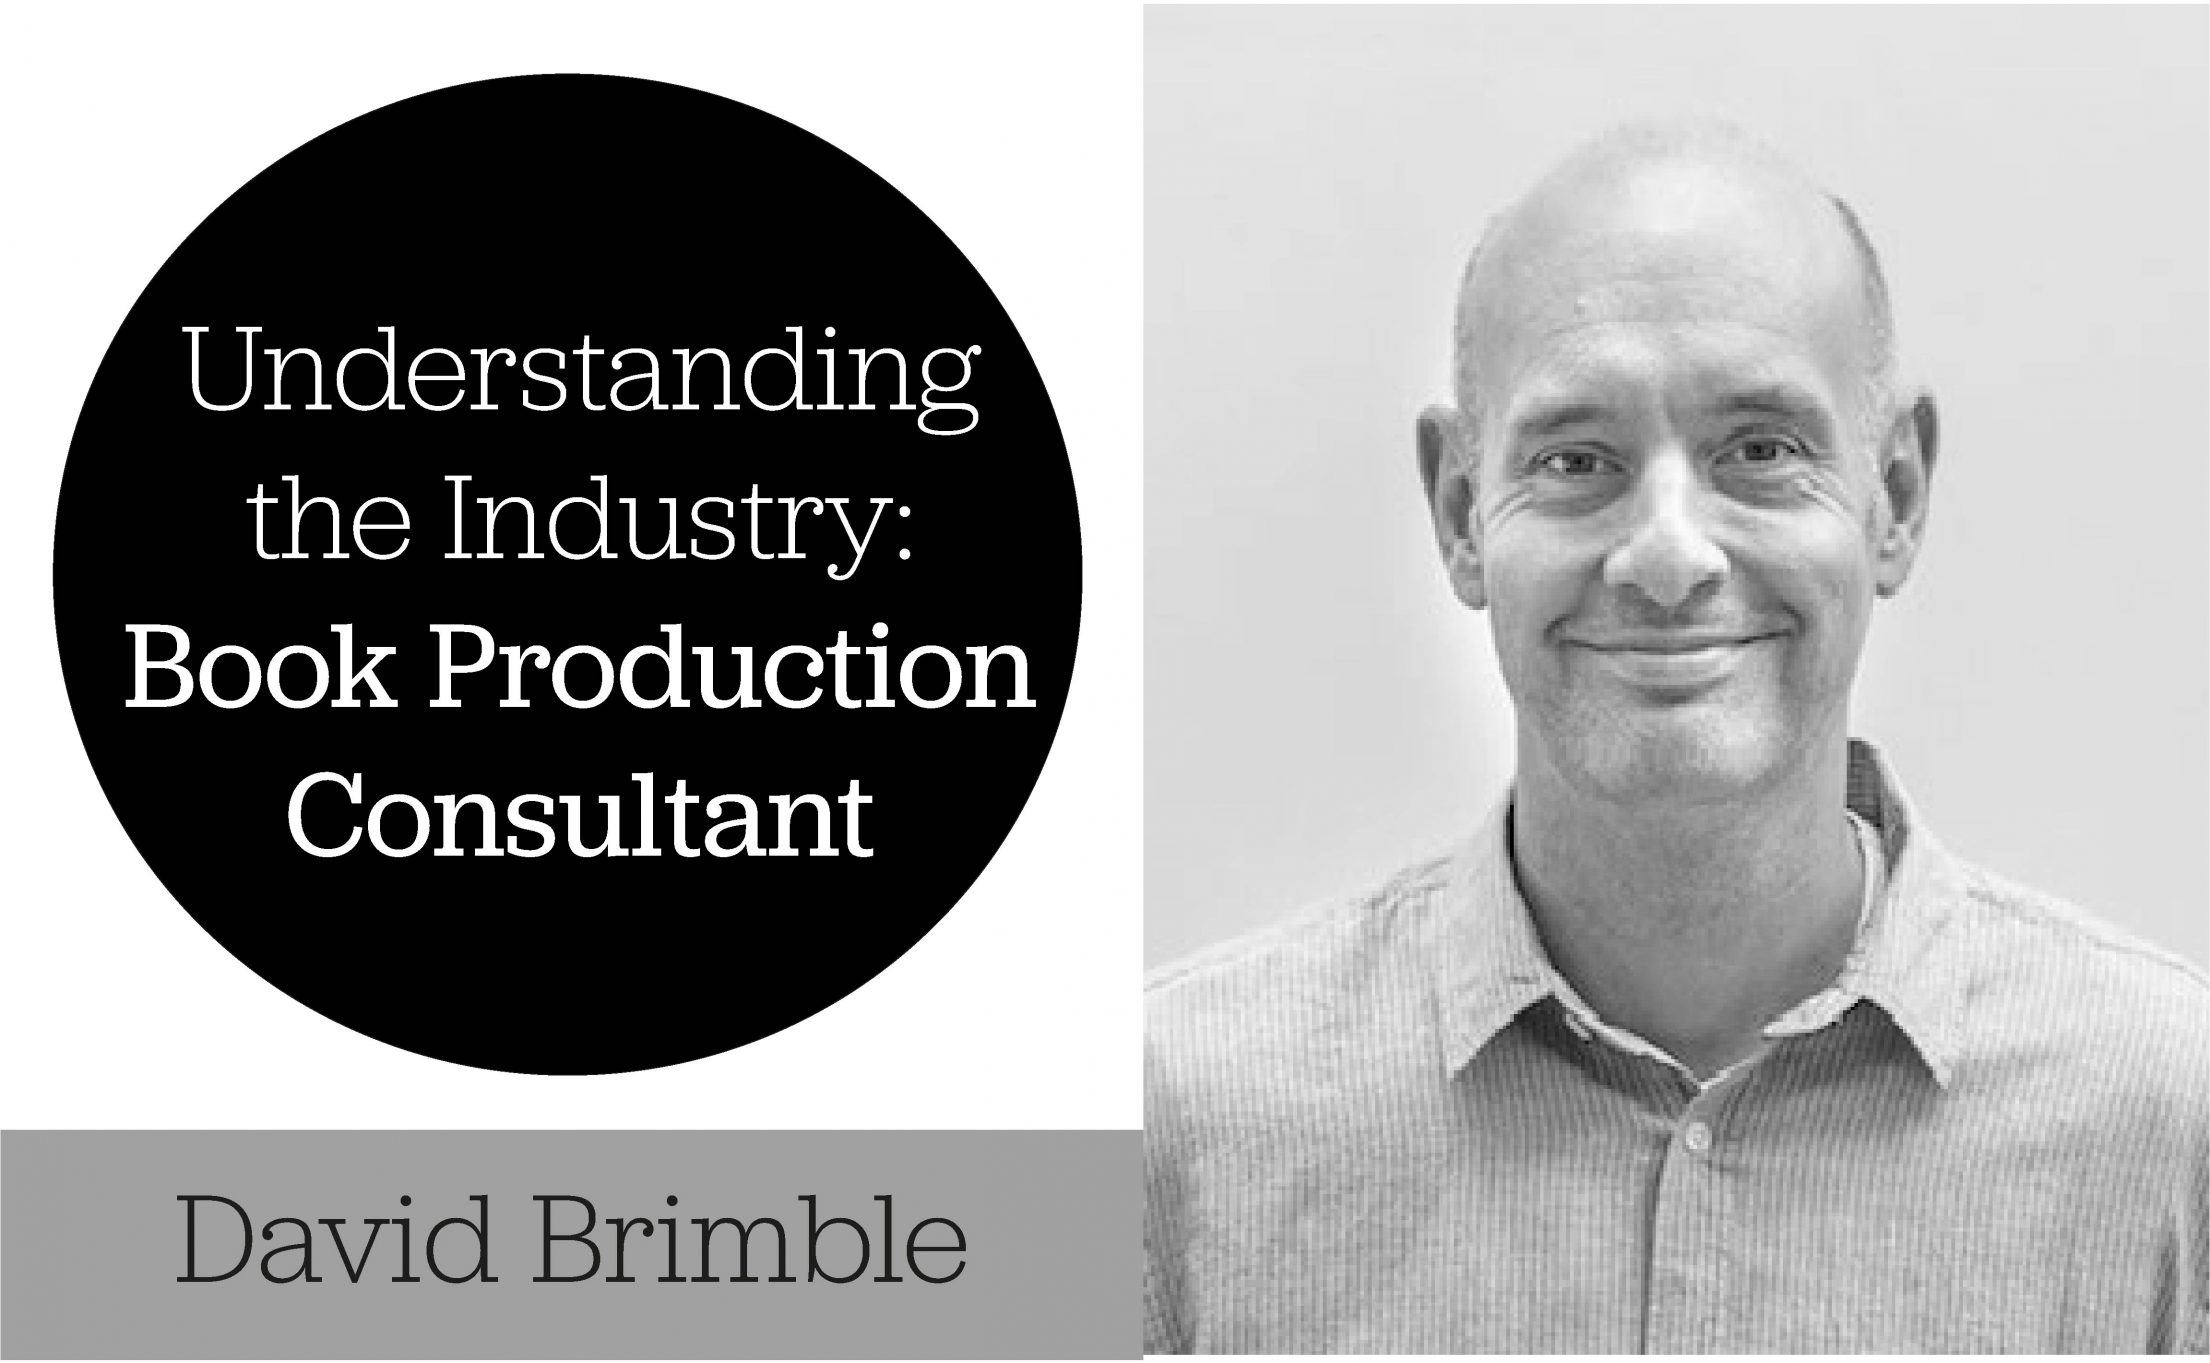 Production Consultant